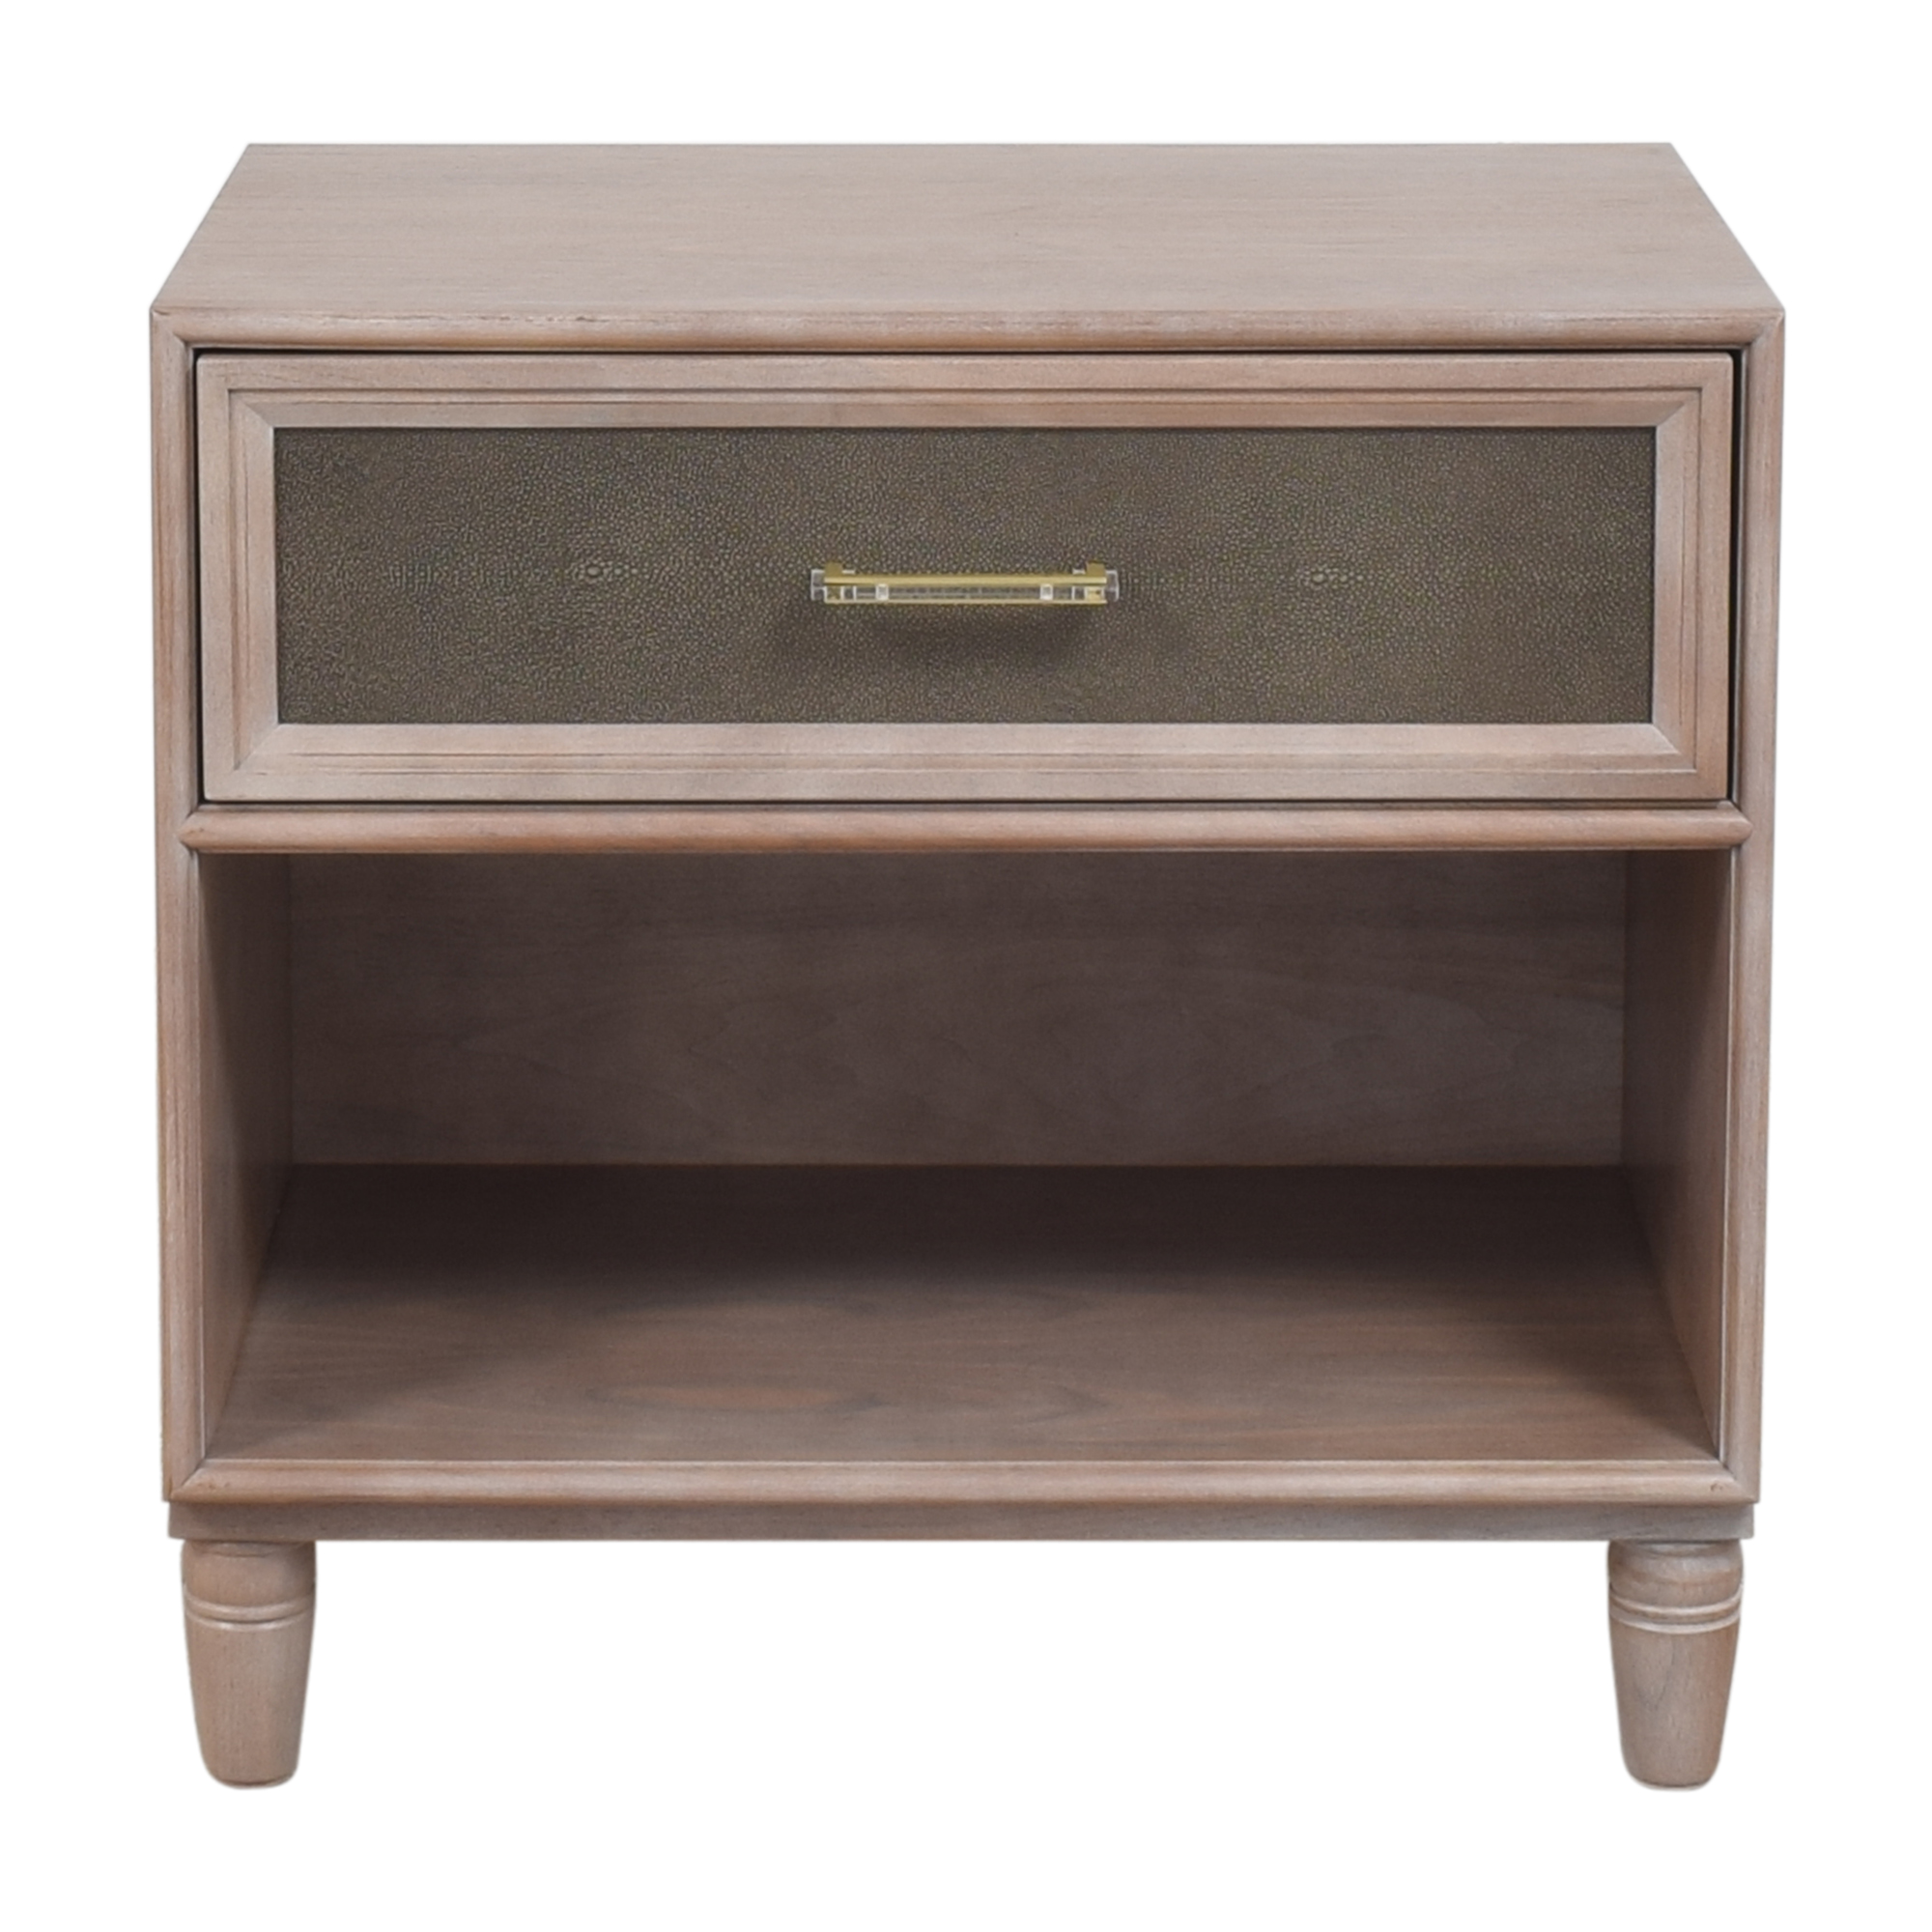 shop The New Traditionalists Single Drawer End Table The New Traditionalists End Tables